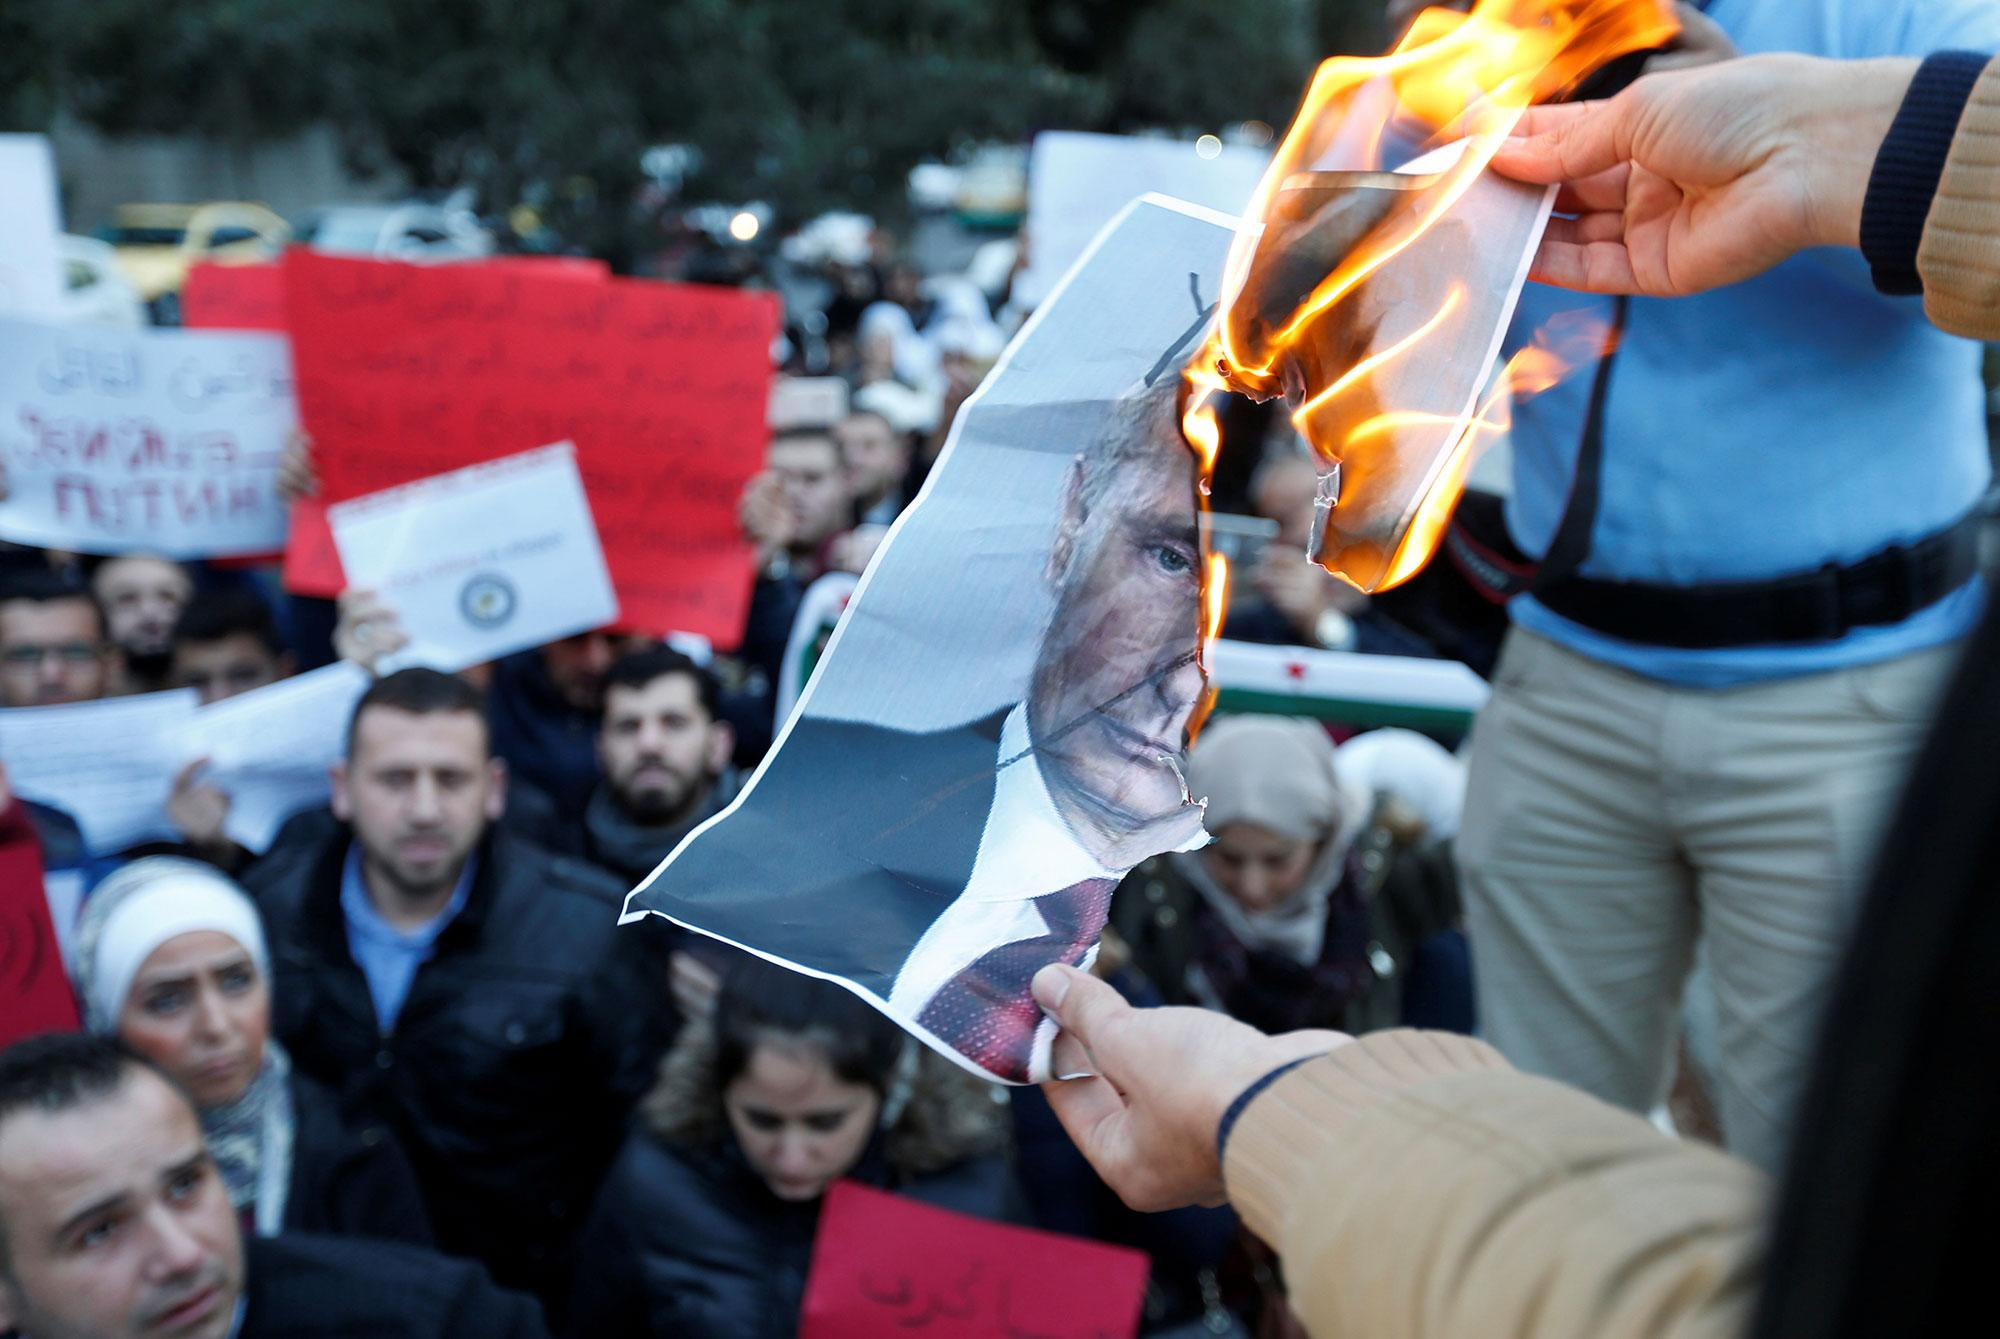 <p>Protesters burn a picture of Russian President Vladimir Putin during a sit-in, in solidarity with the people of Aleppo and against Russia's support of the Syrian regime, in front of the Russian embassy in Amman, Jordan on Dec. 13, 2016. (Photo: Muhammad Hamed/Reuters) </p>